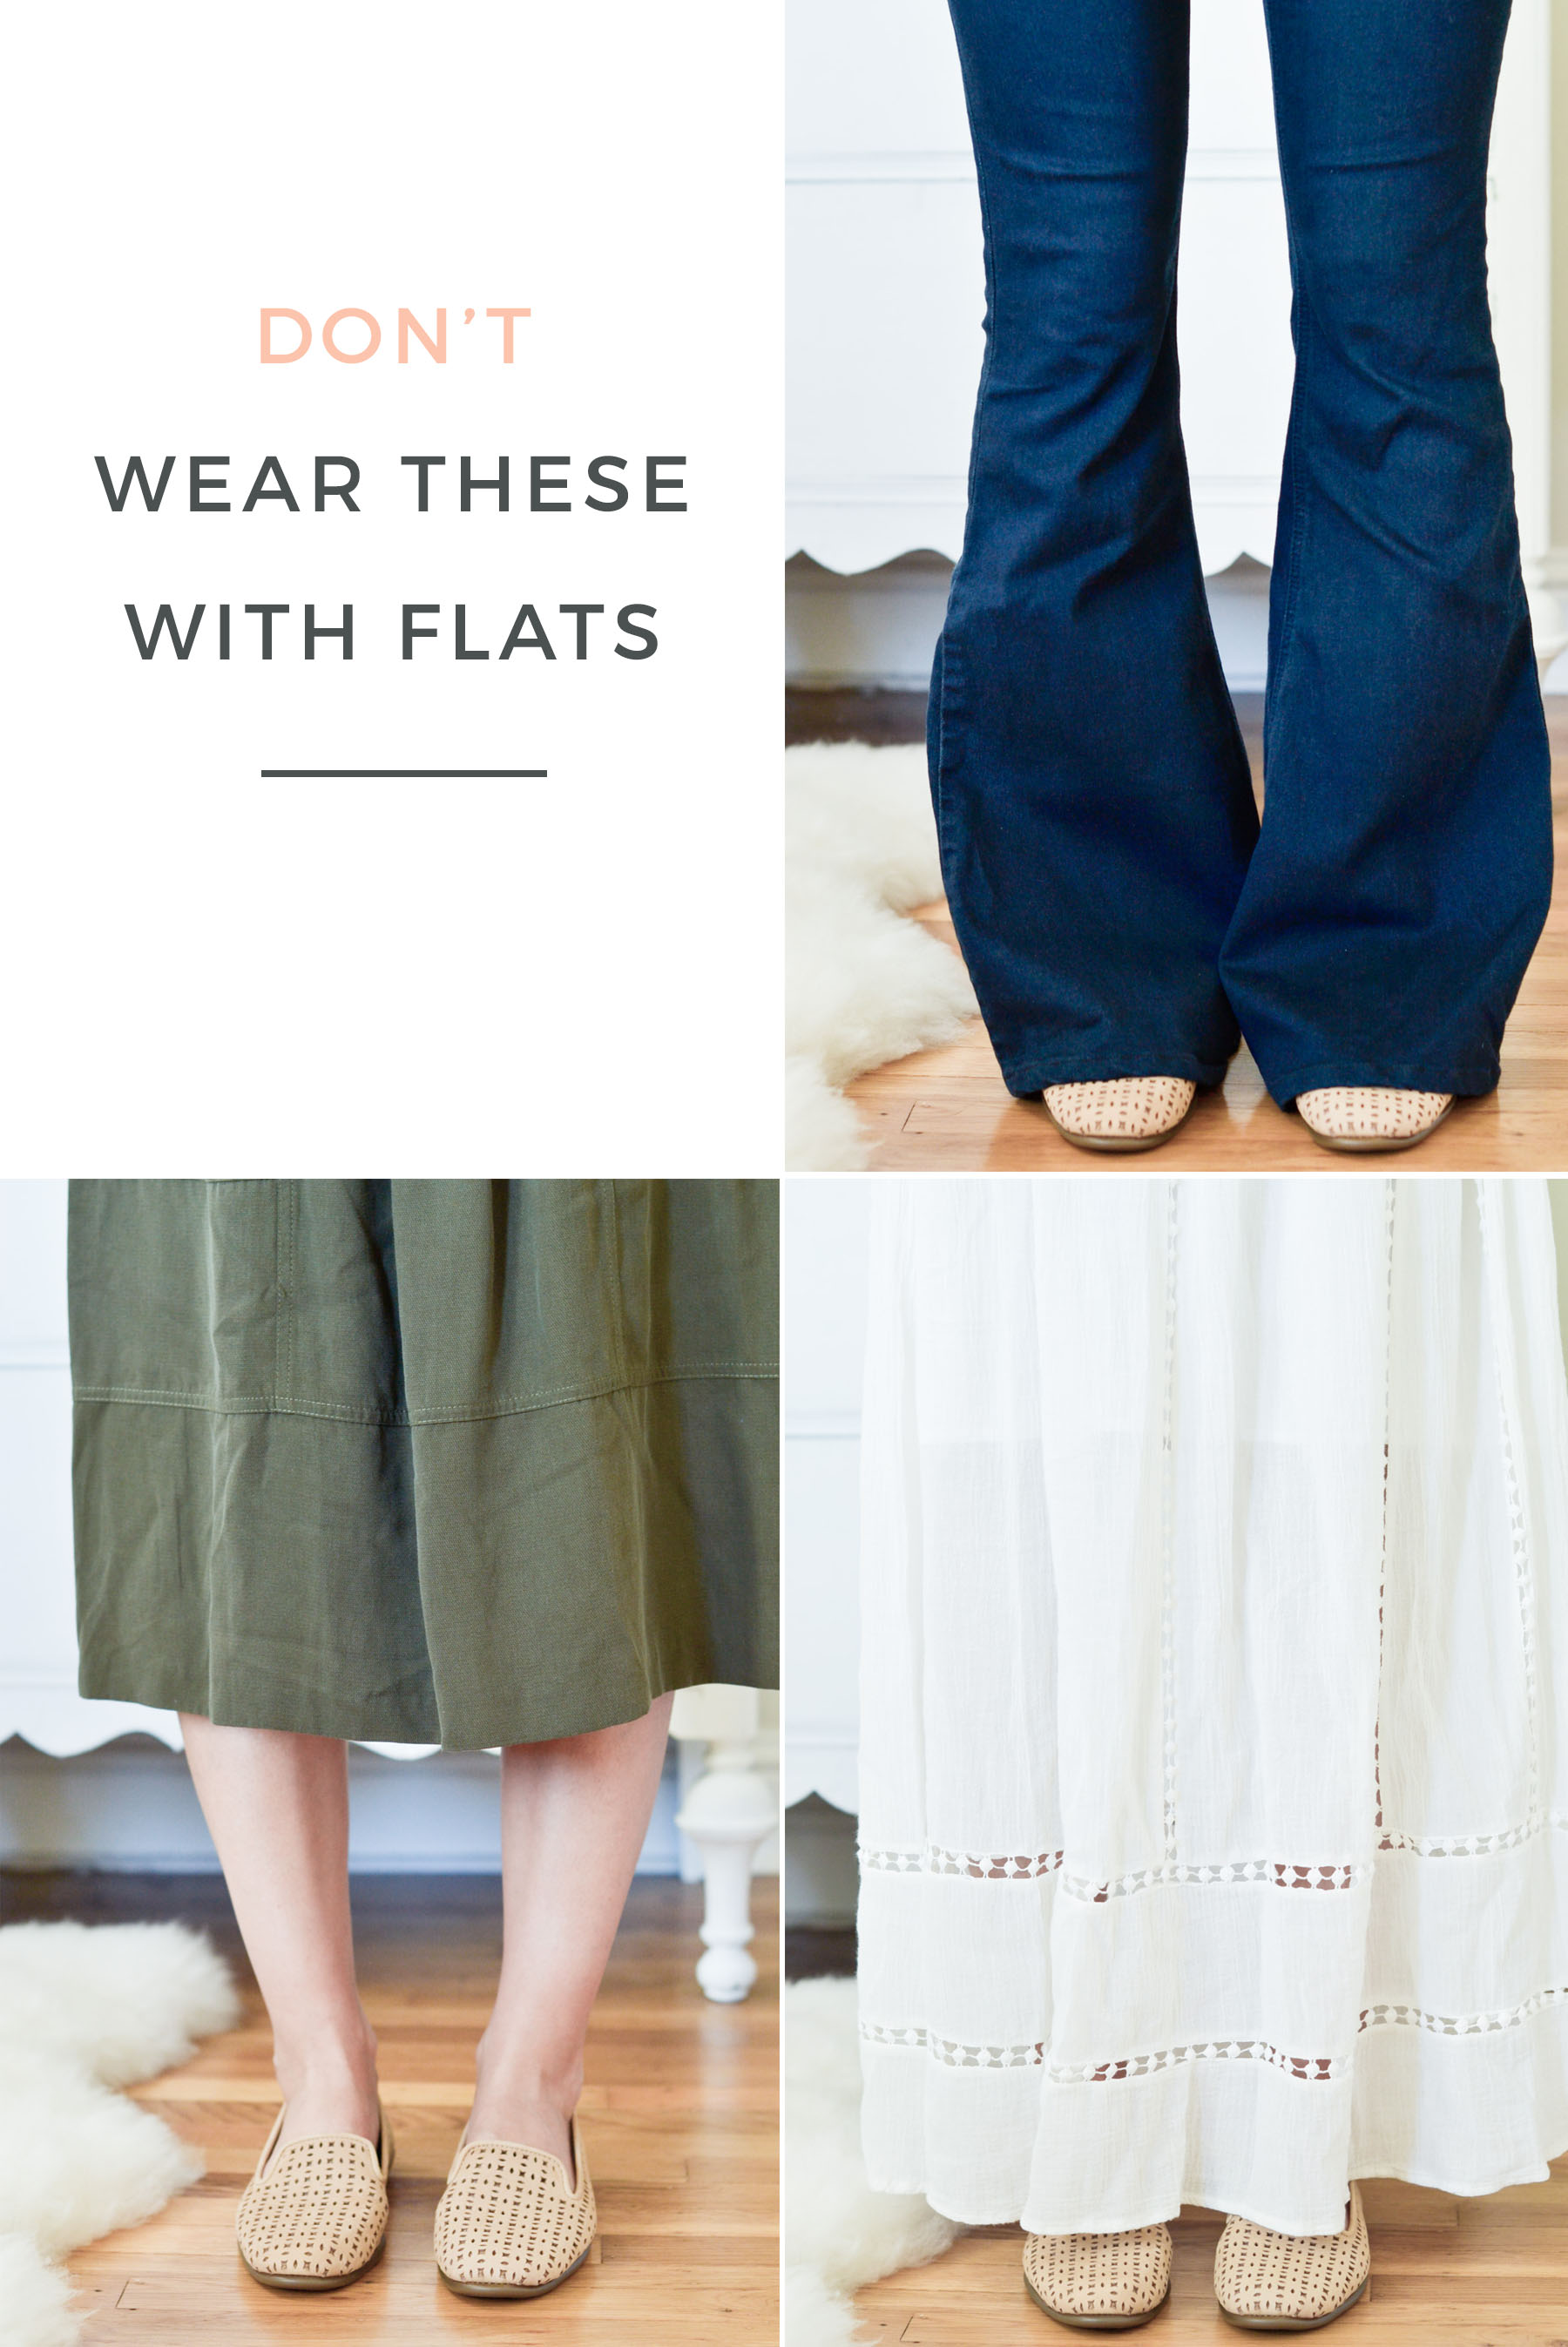 what not to wear with flats, including flare or wide-leg jeans, midi skirts, and maxi skirts